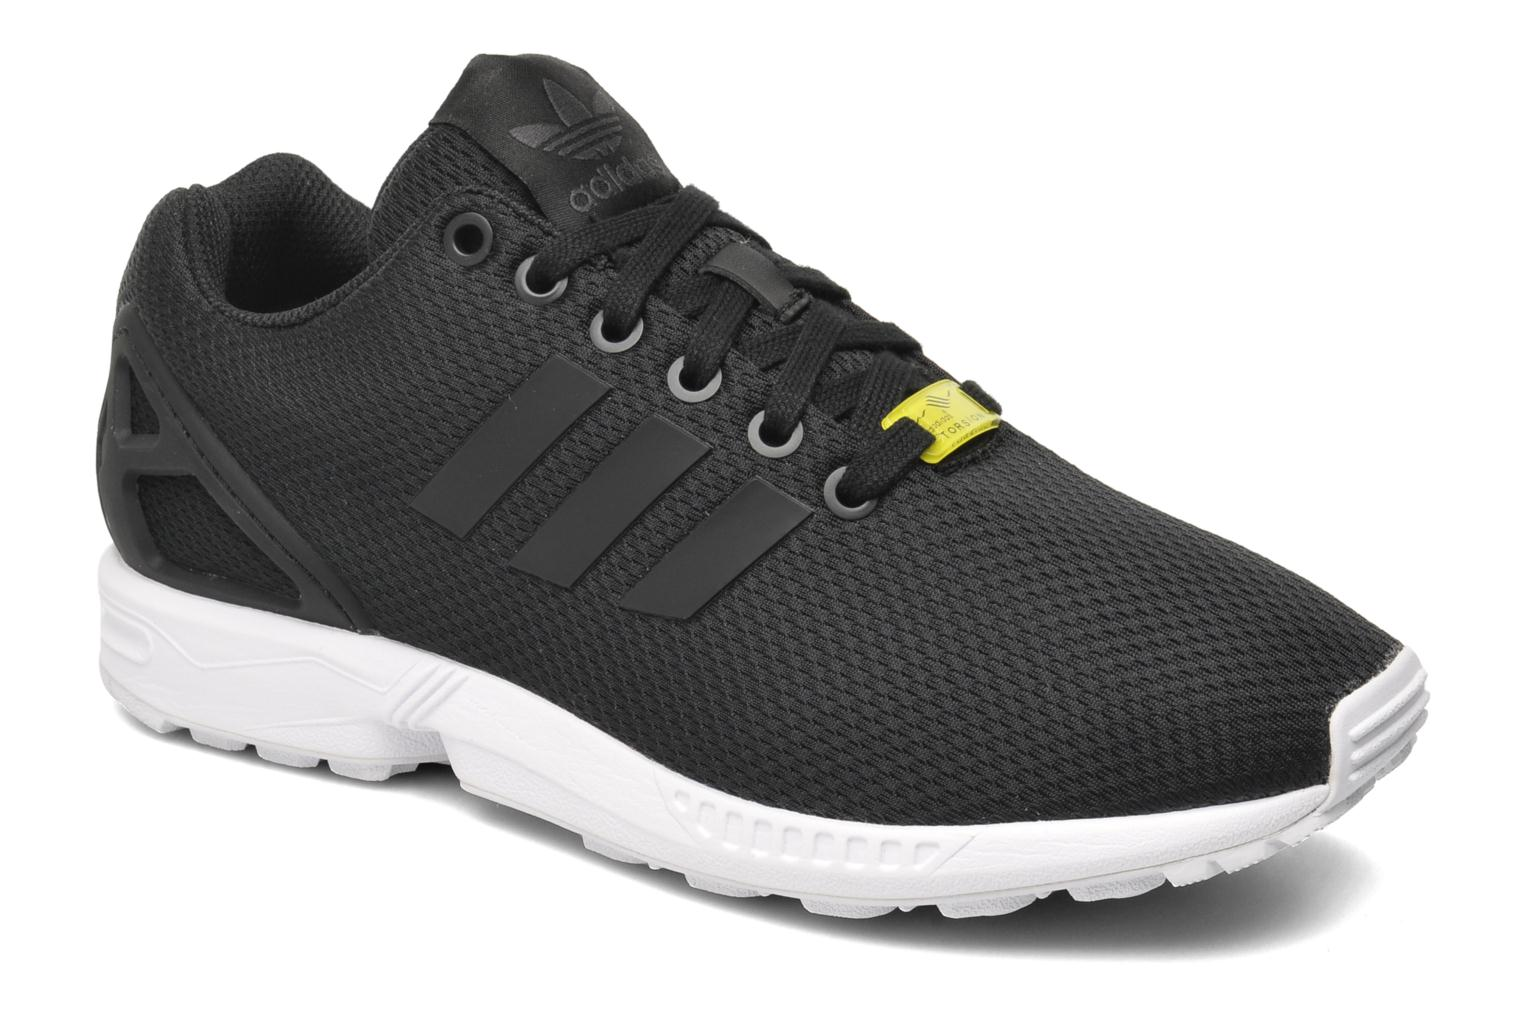 Zx Flux Black 1-Black 1-White